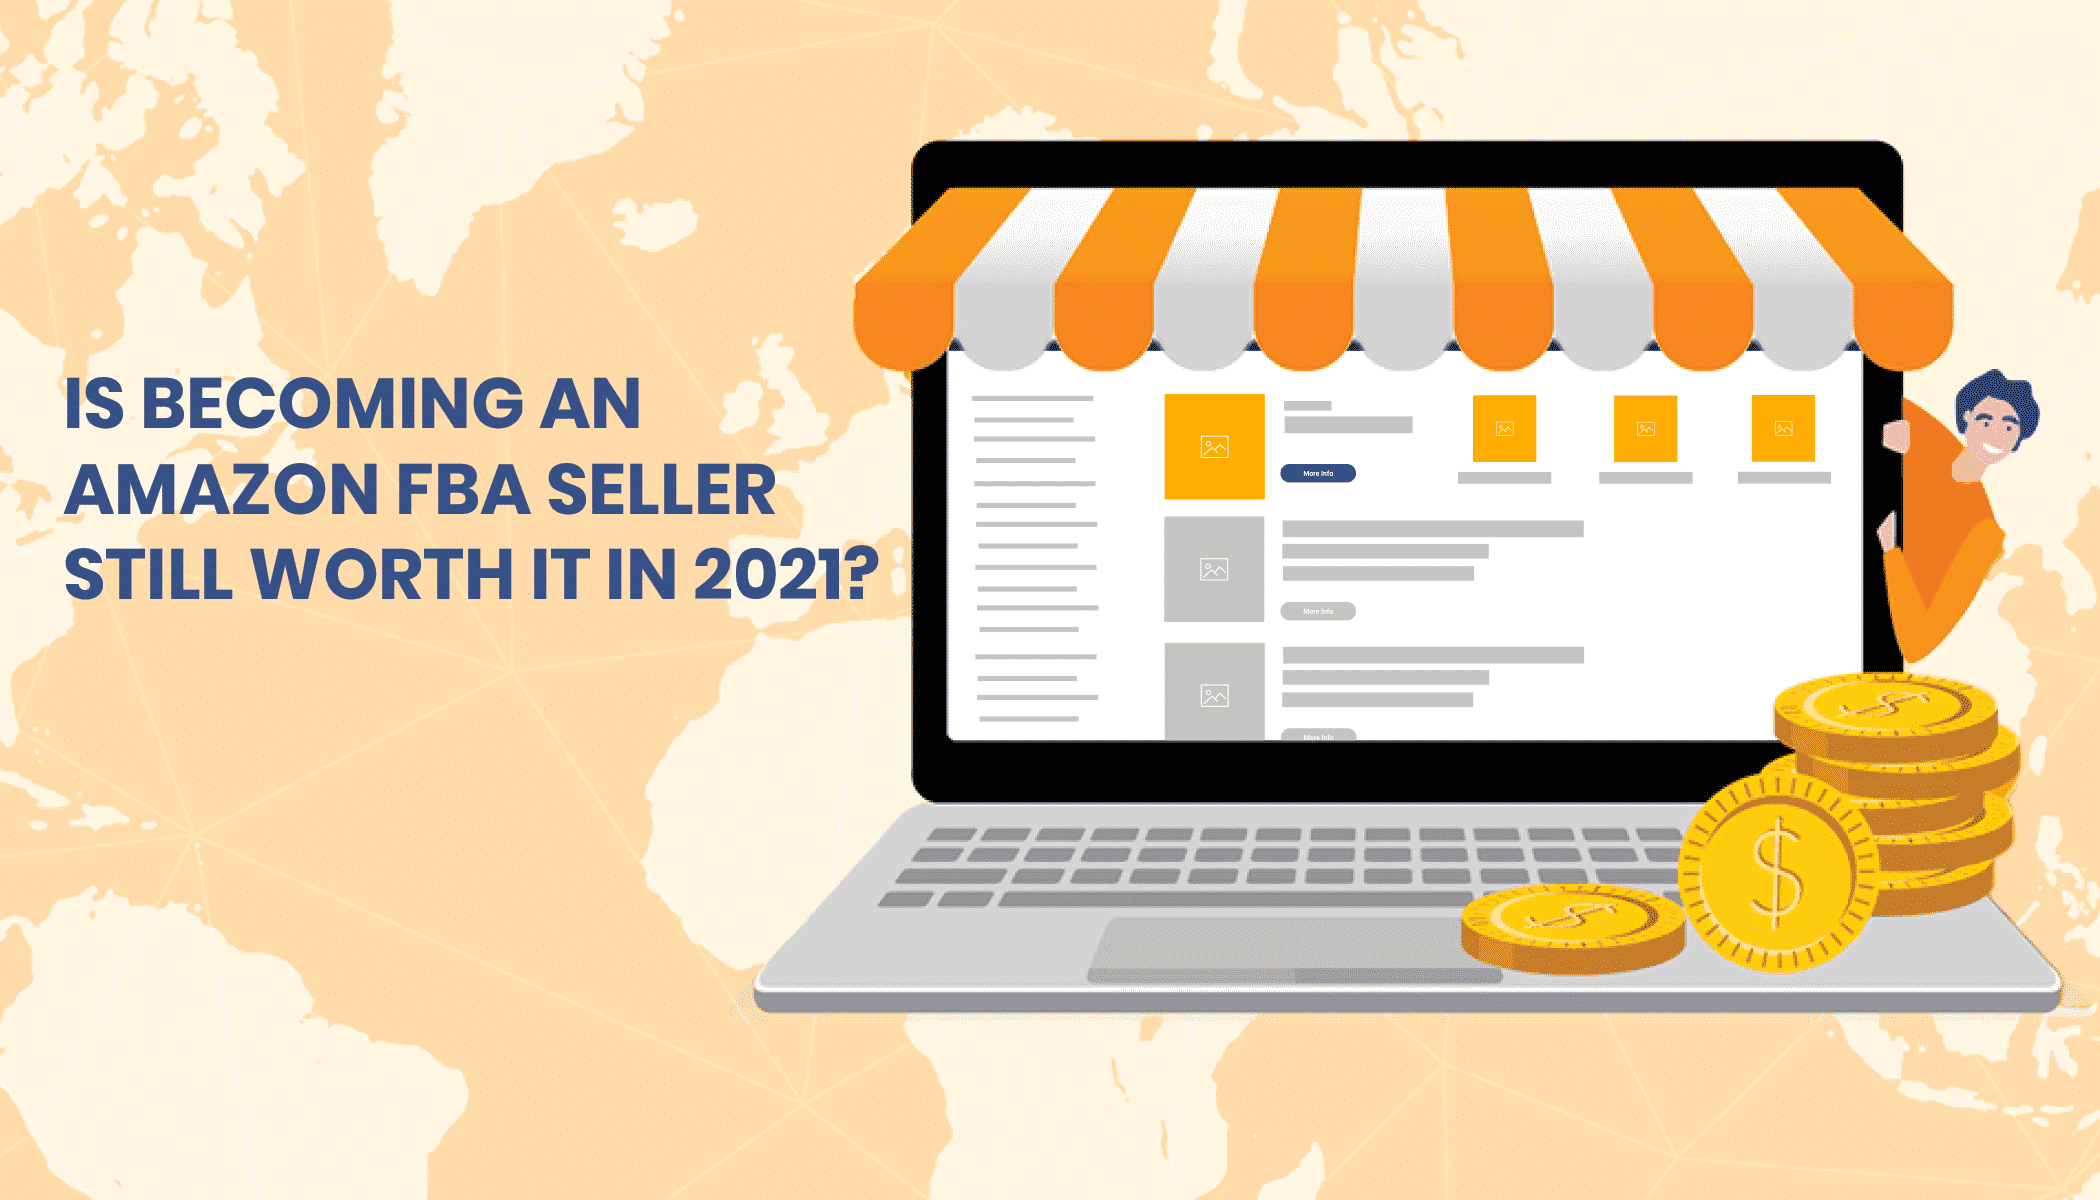 Becoming an Amazon FBA Seller in 2021